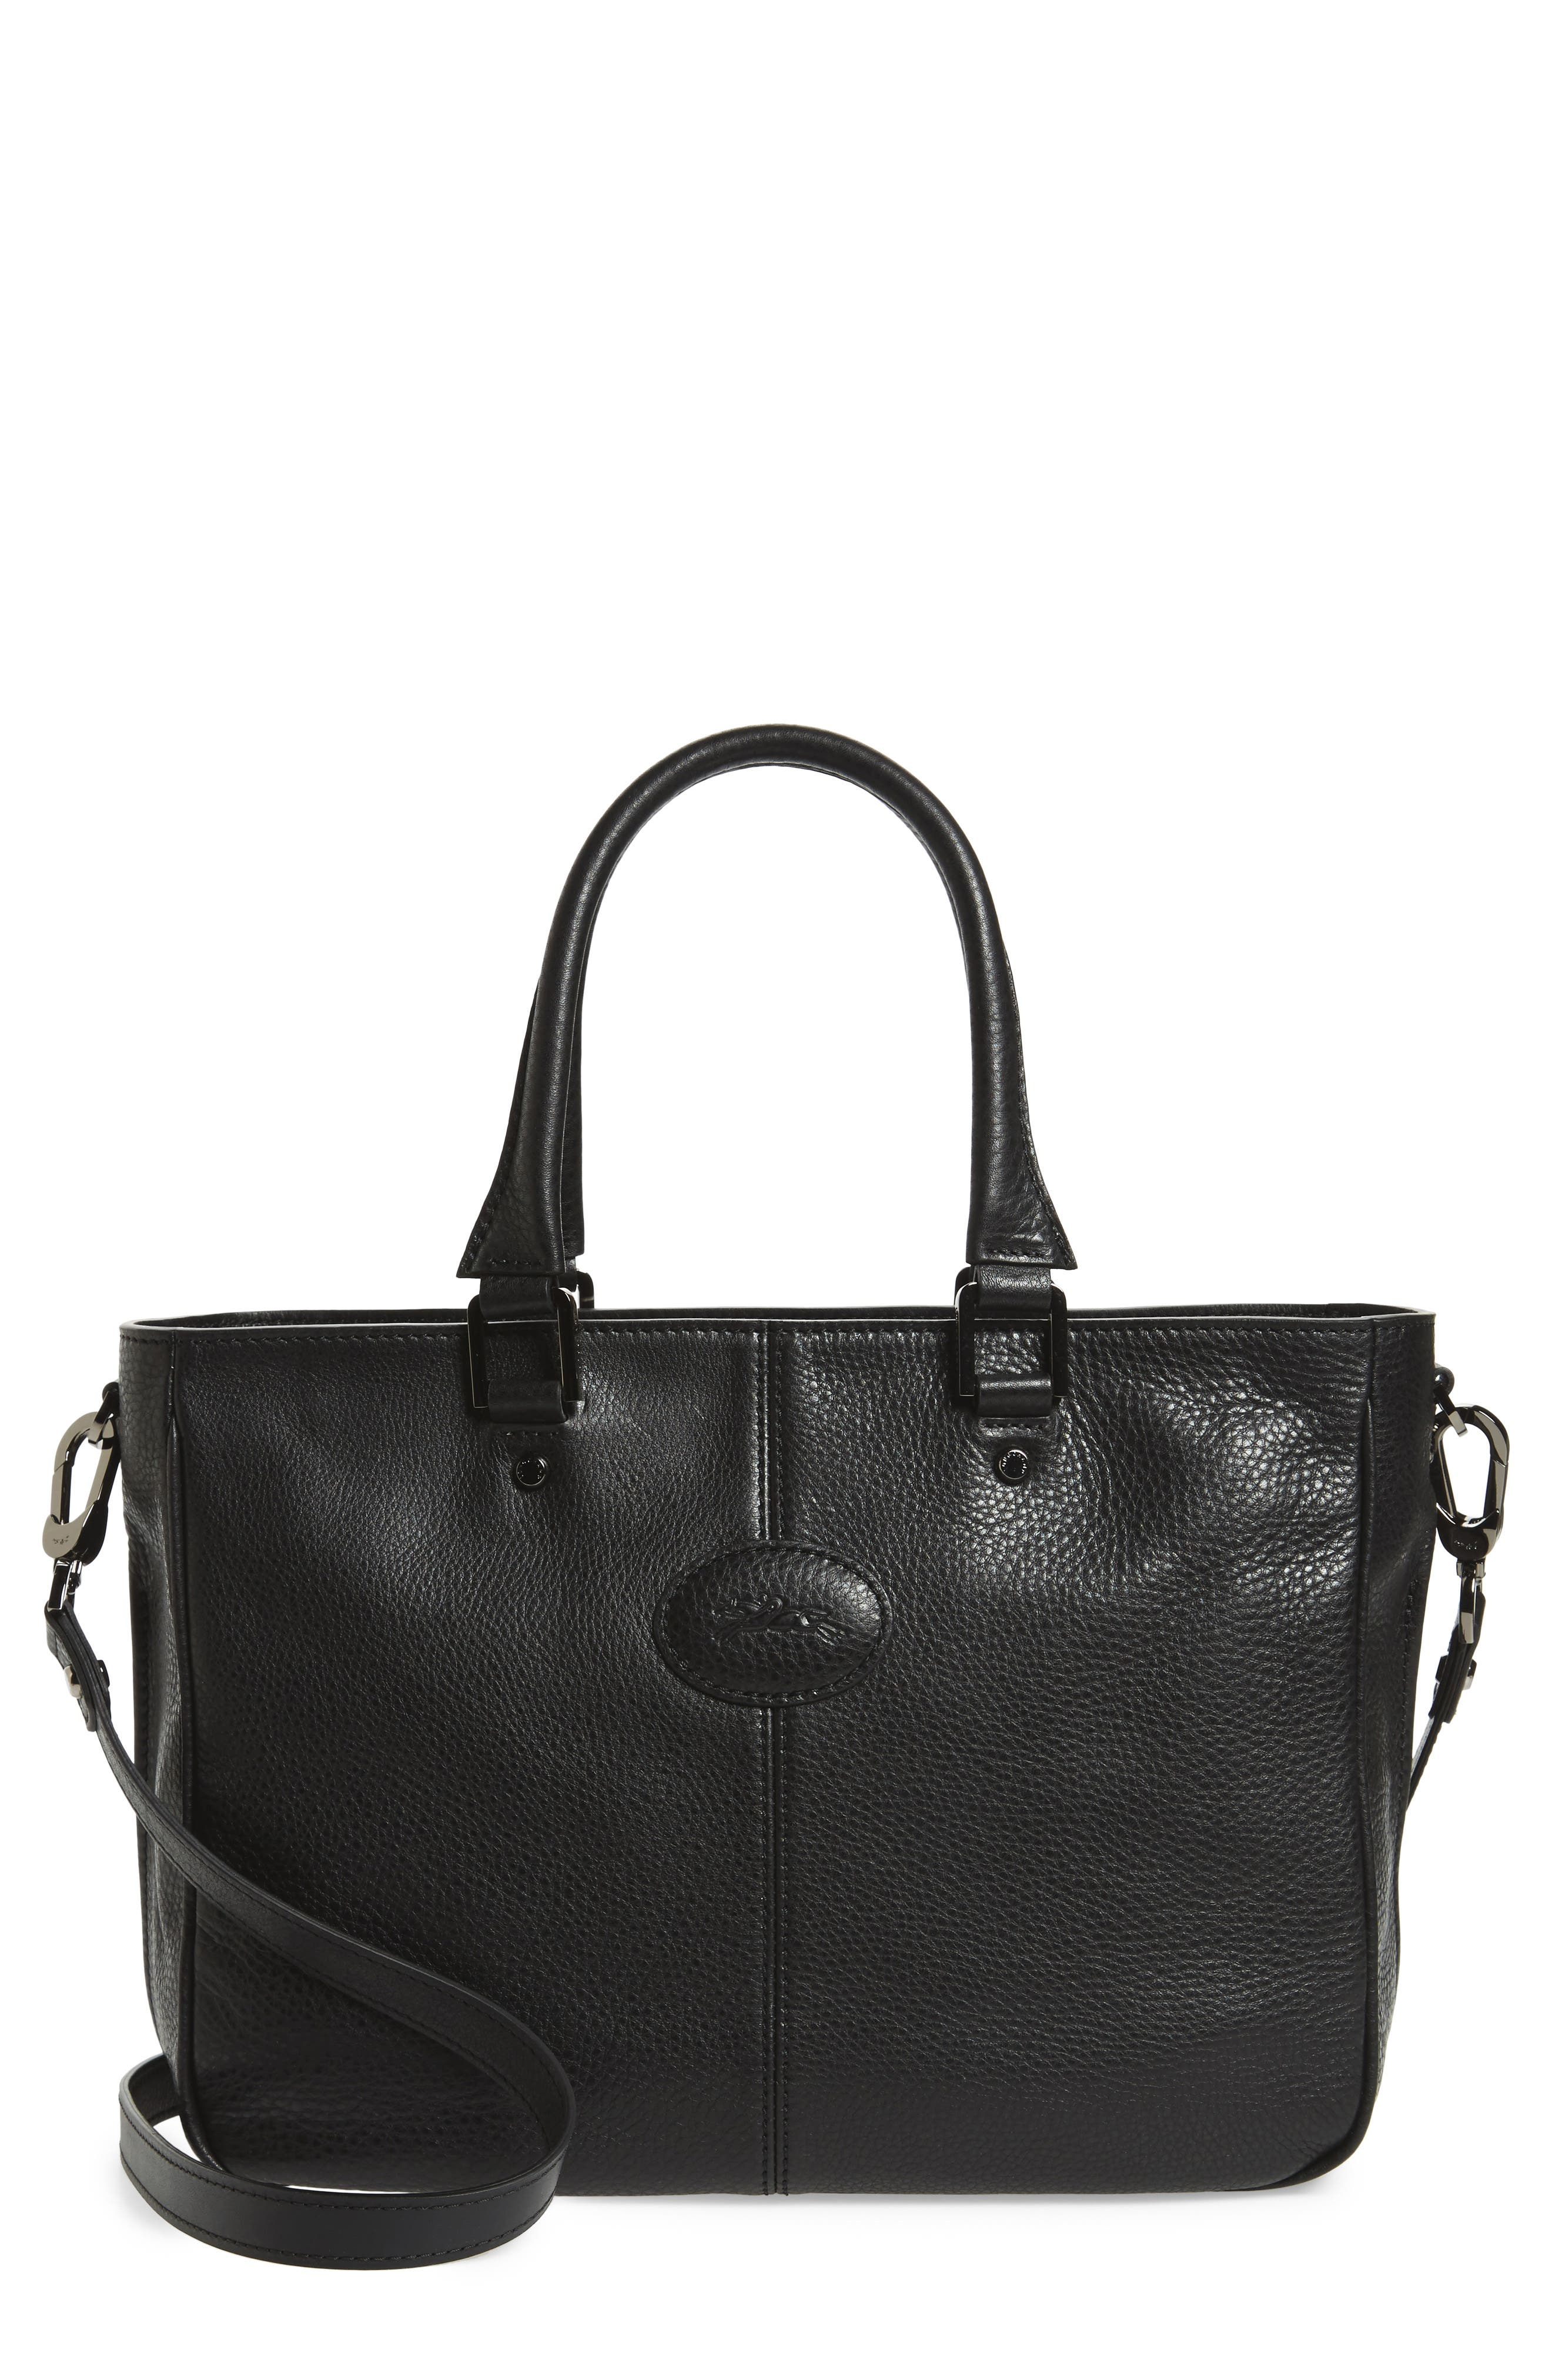 Mystery Leather Satchel,                             Main thumbnail 1, color,                             001